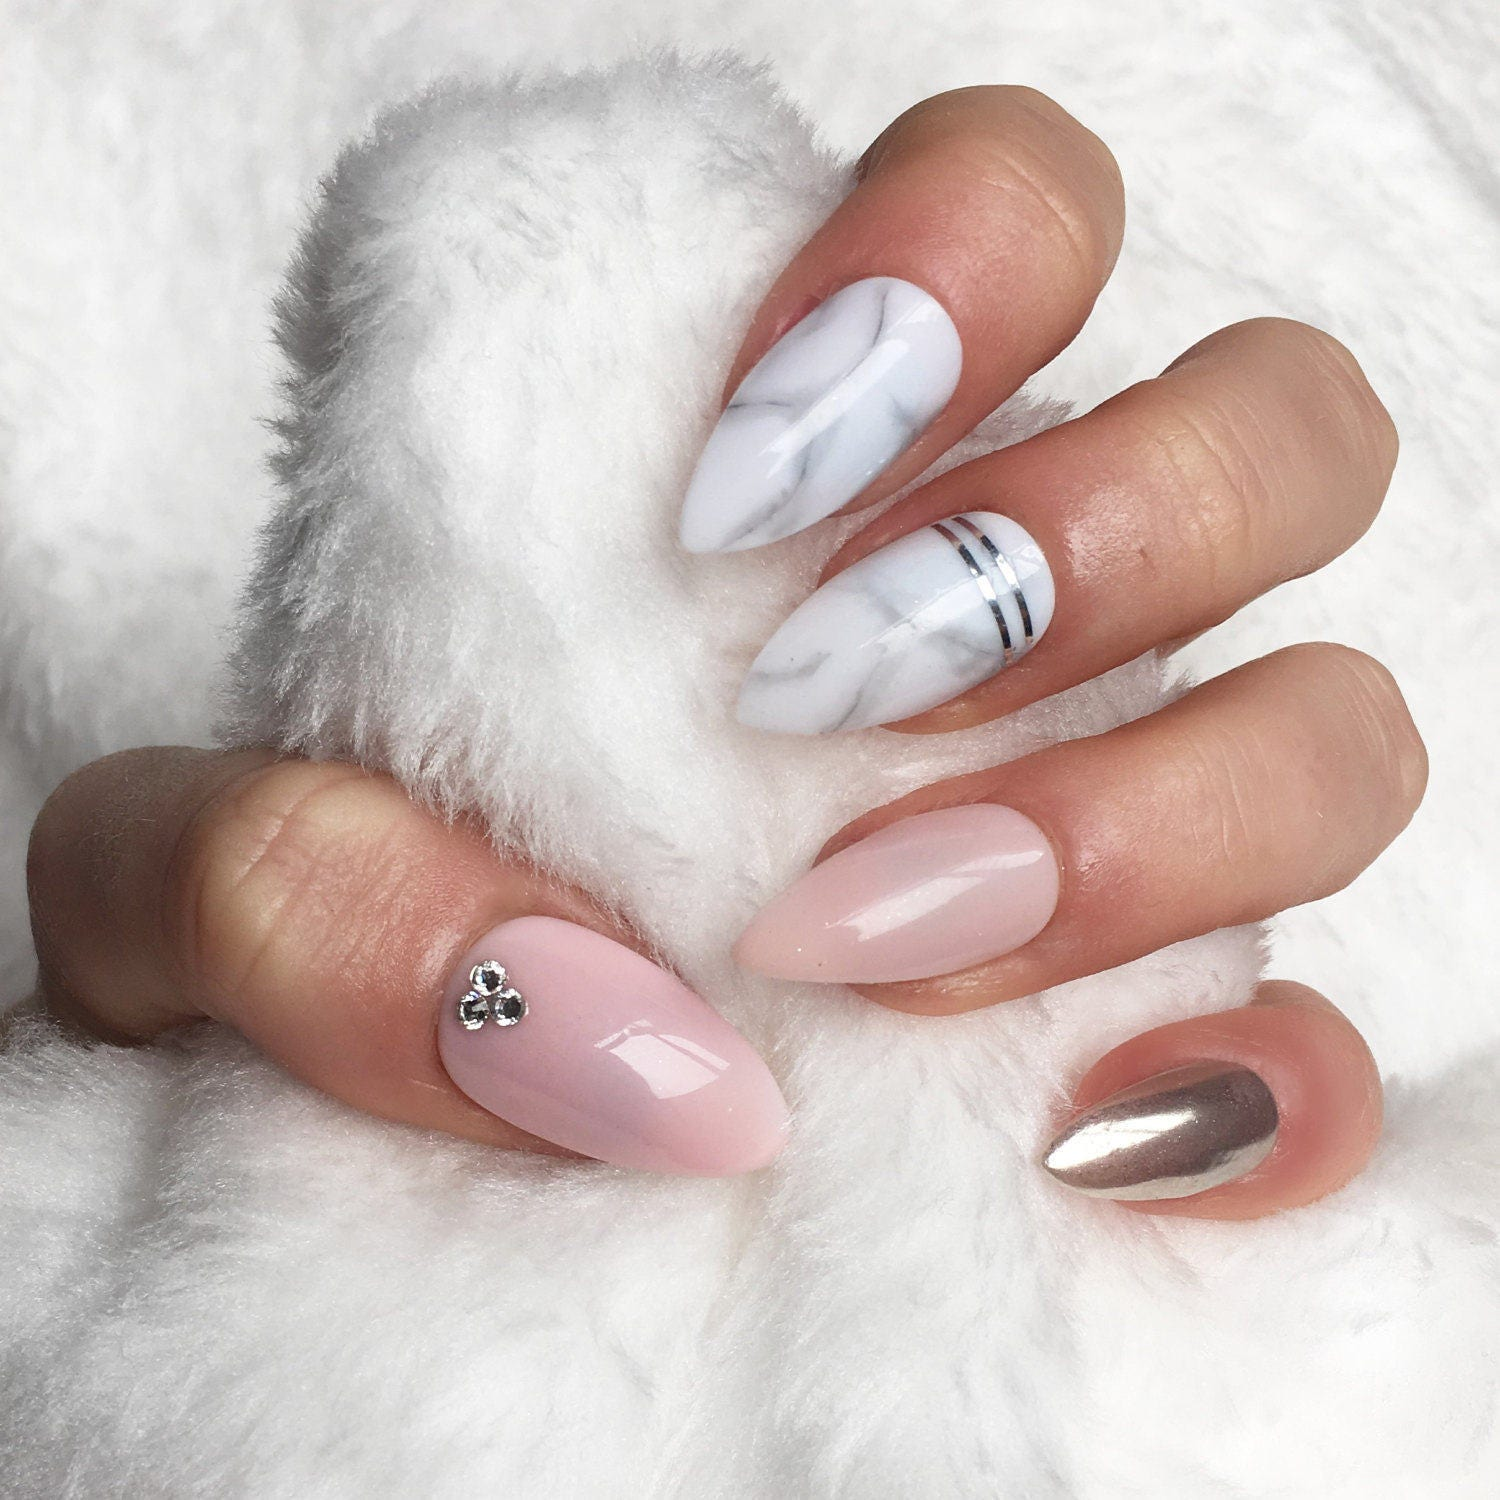 Marble Nail Art Stiletto: Press On Nails Light Pink Marble Chrome Nails False Nails